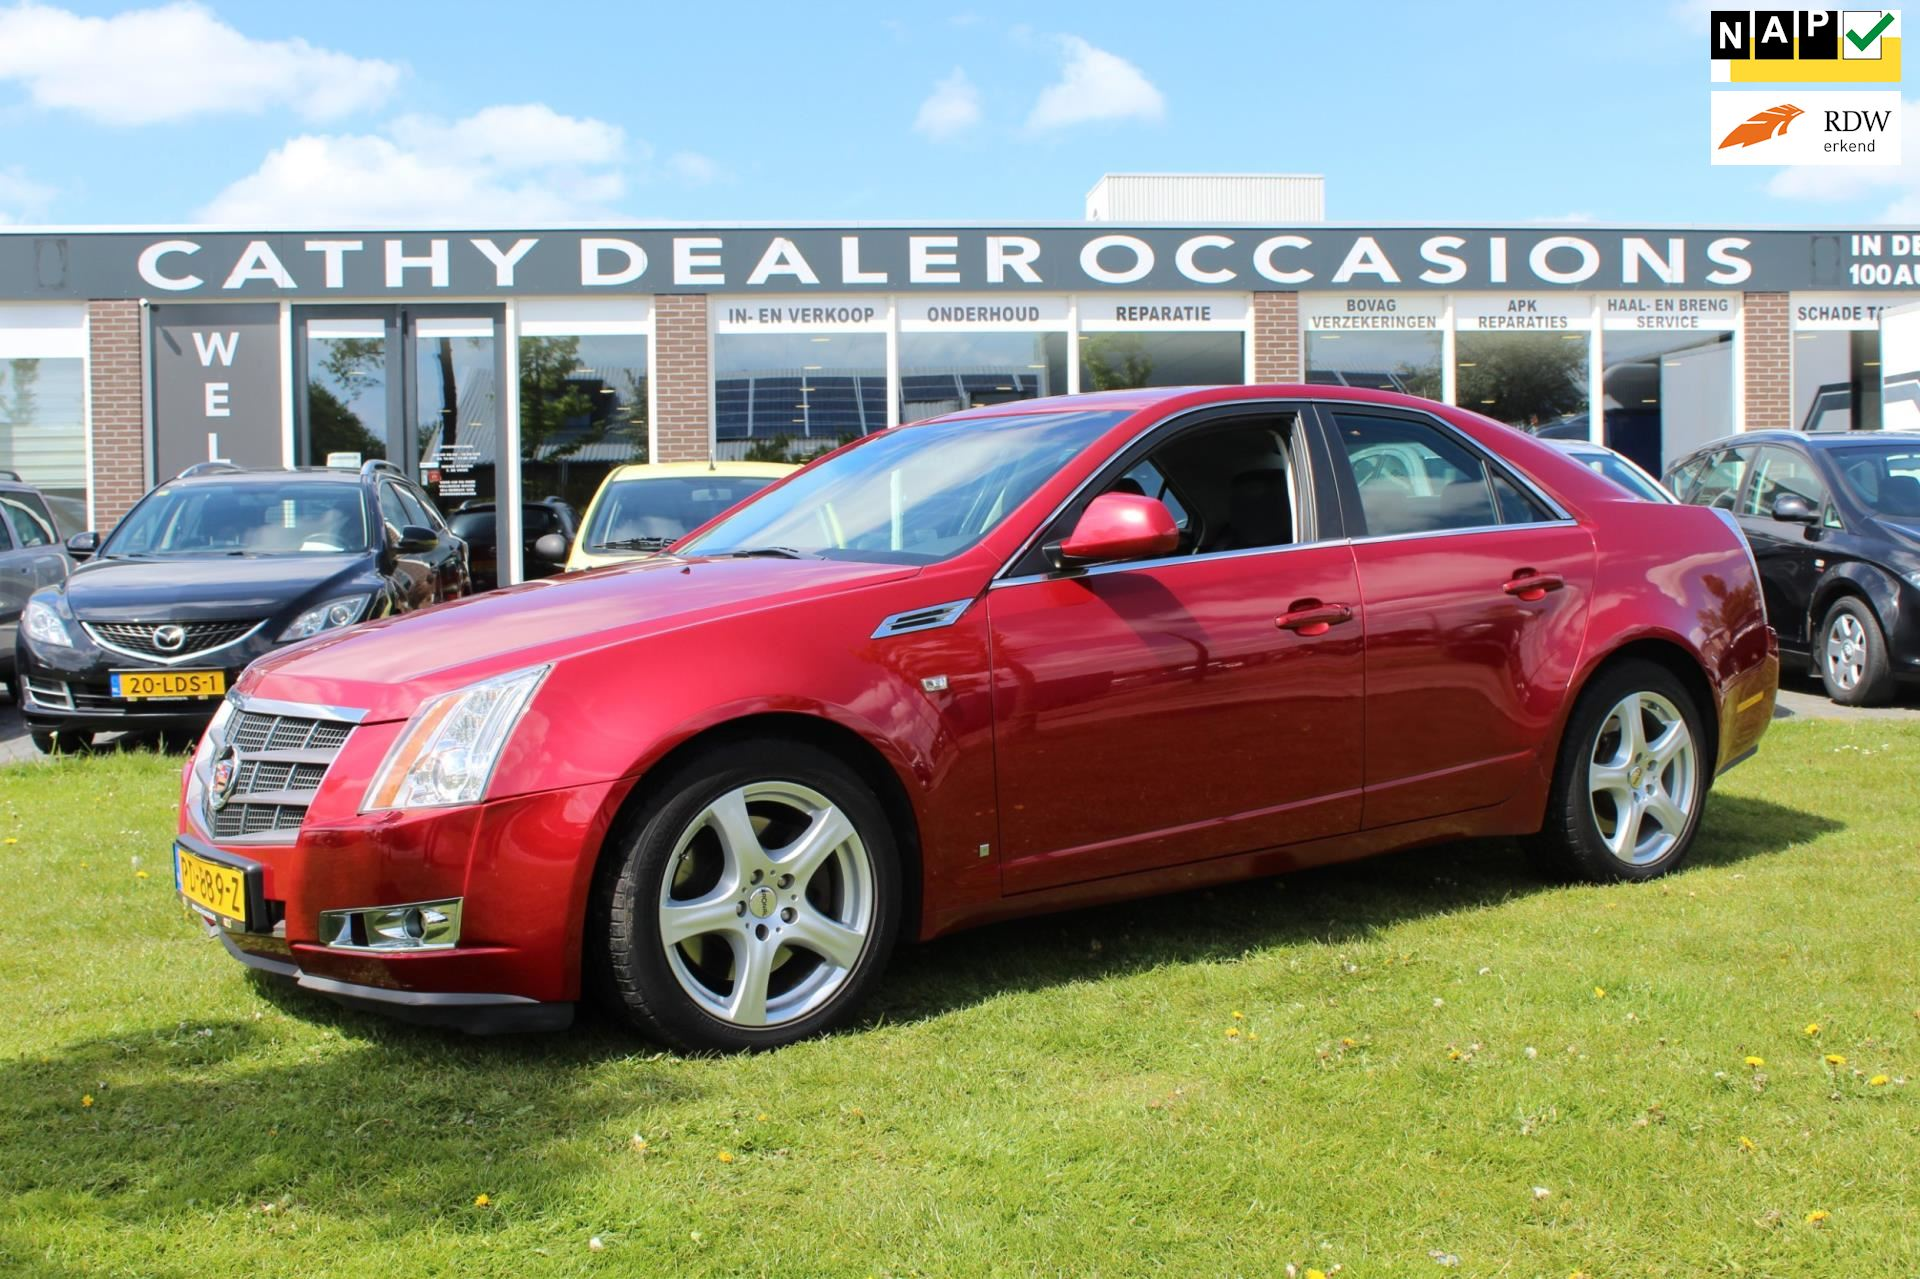 Cadillac CTS occasion - Cathy Dealer Occasions